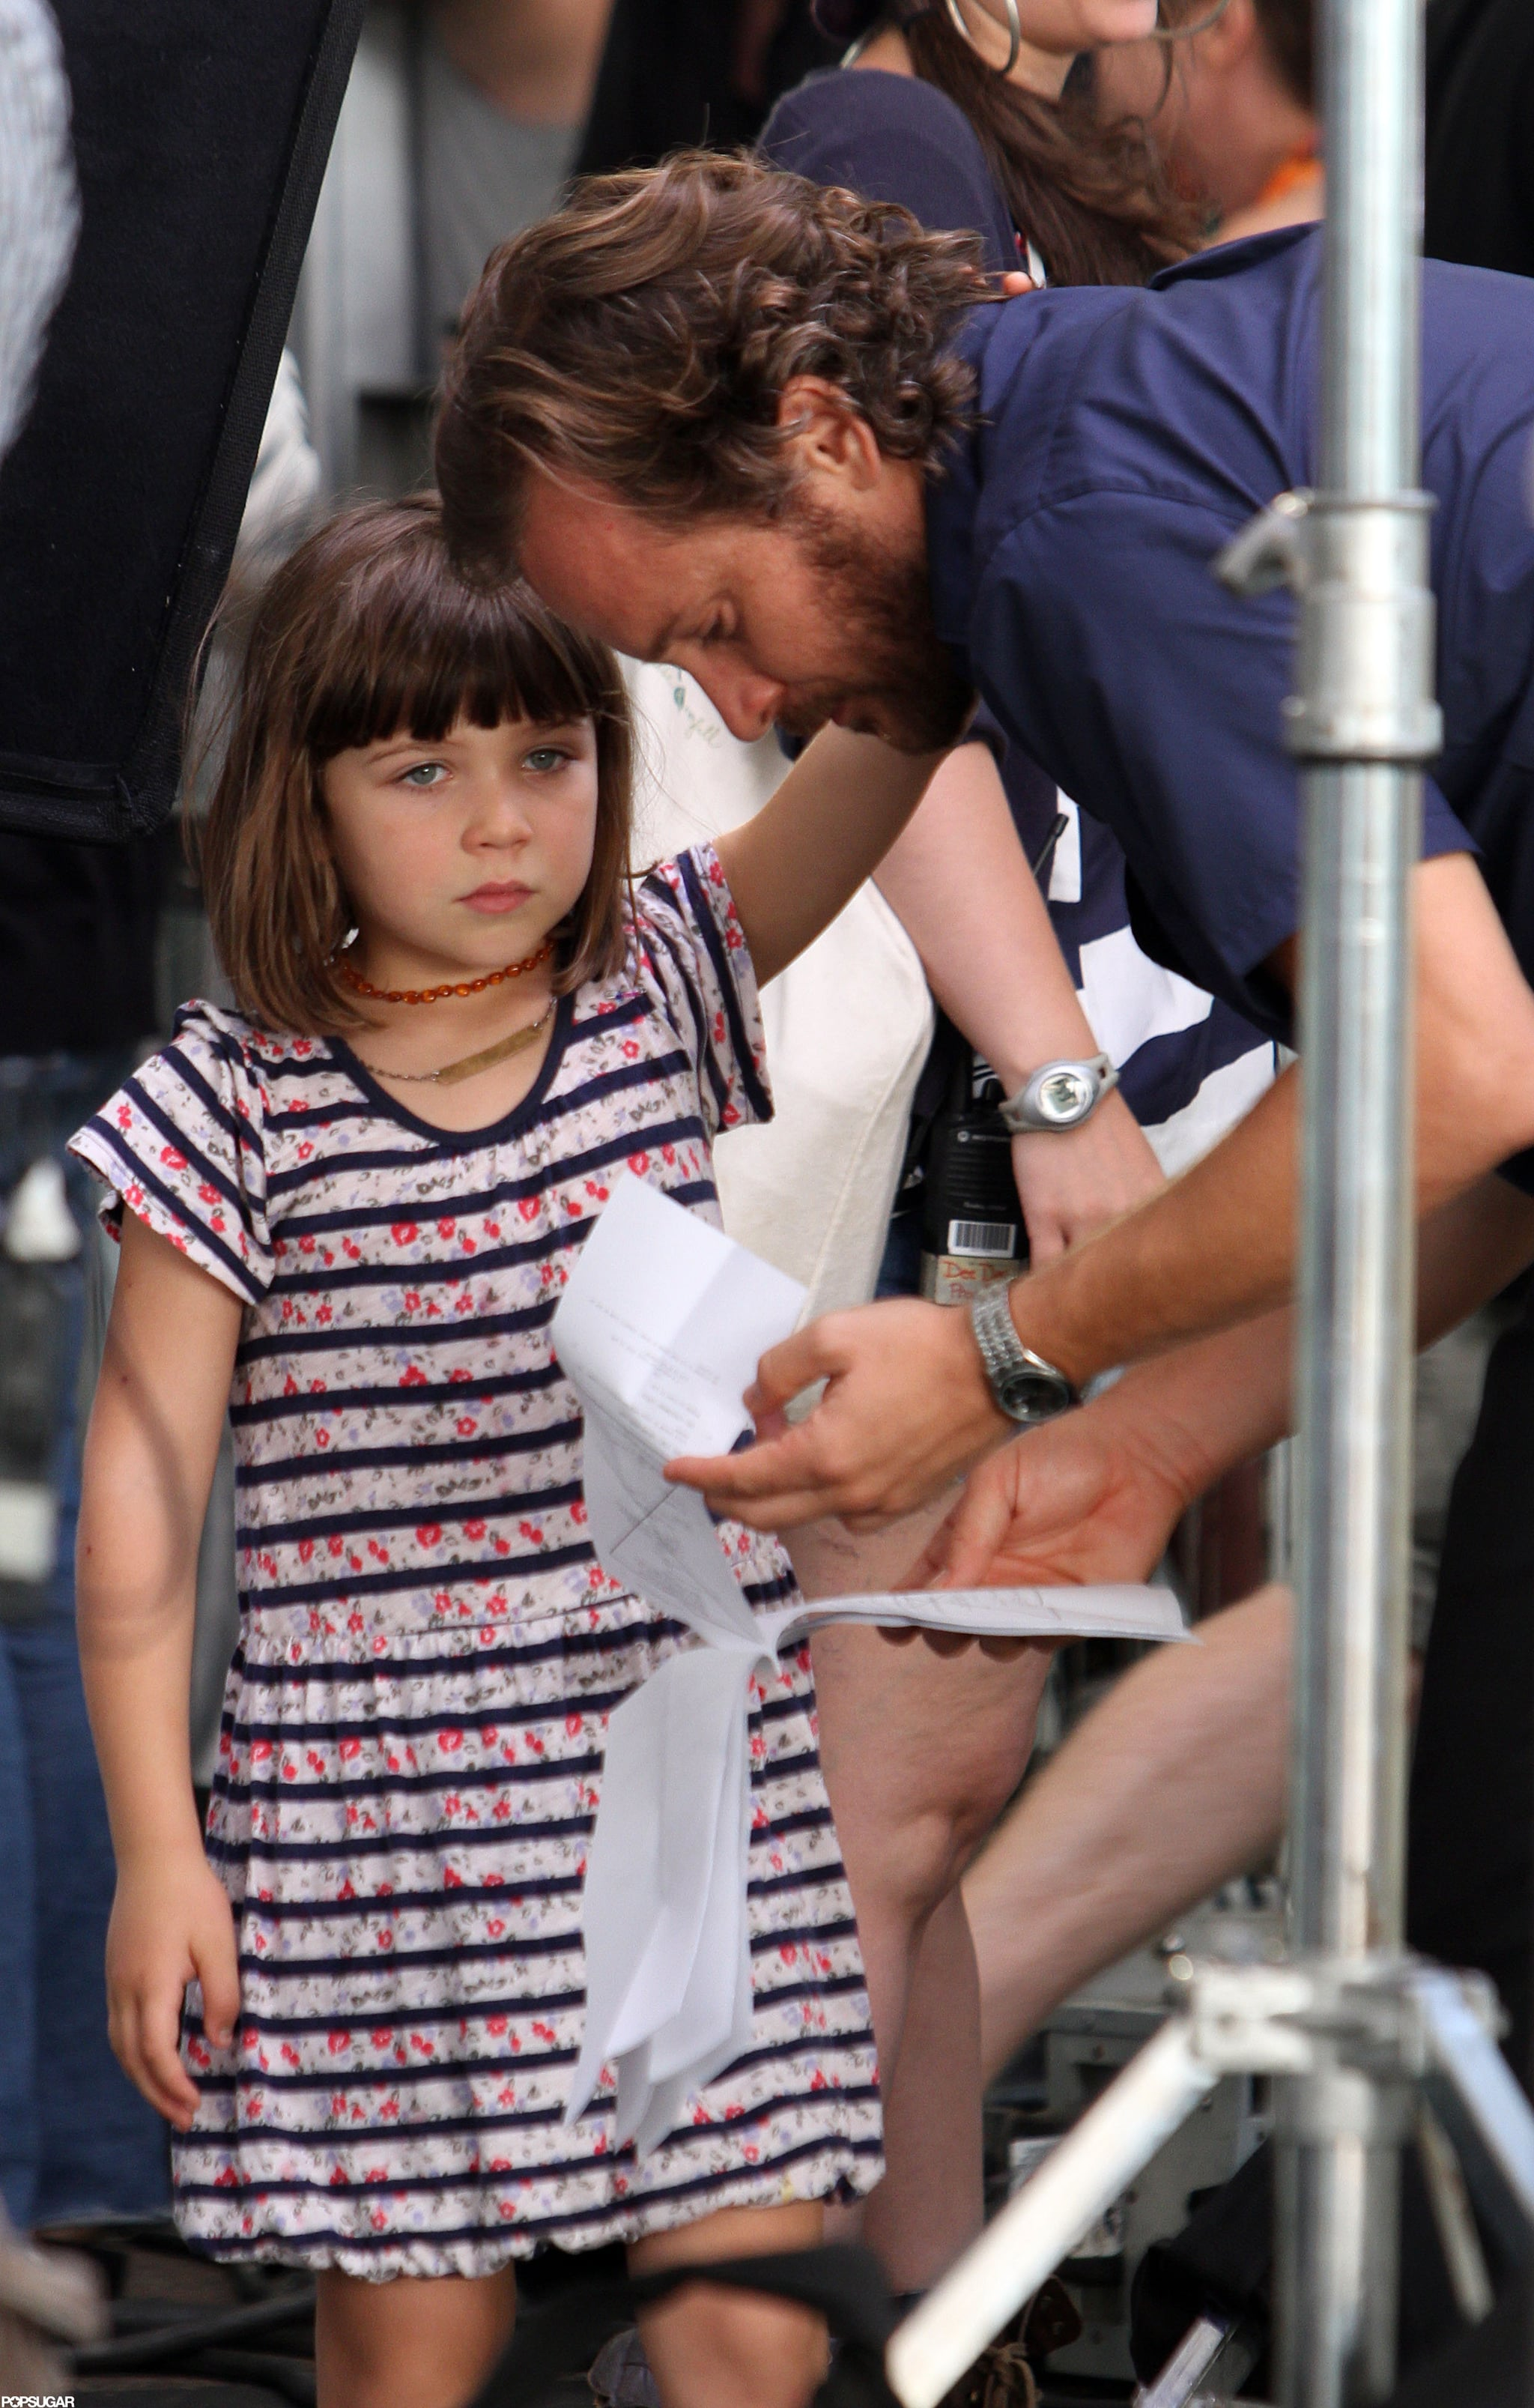 Peter Sarsgaard got a visit on set from daughter Ramona.